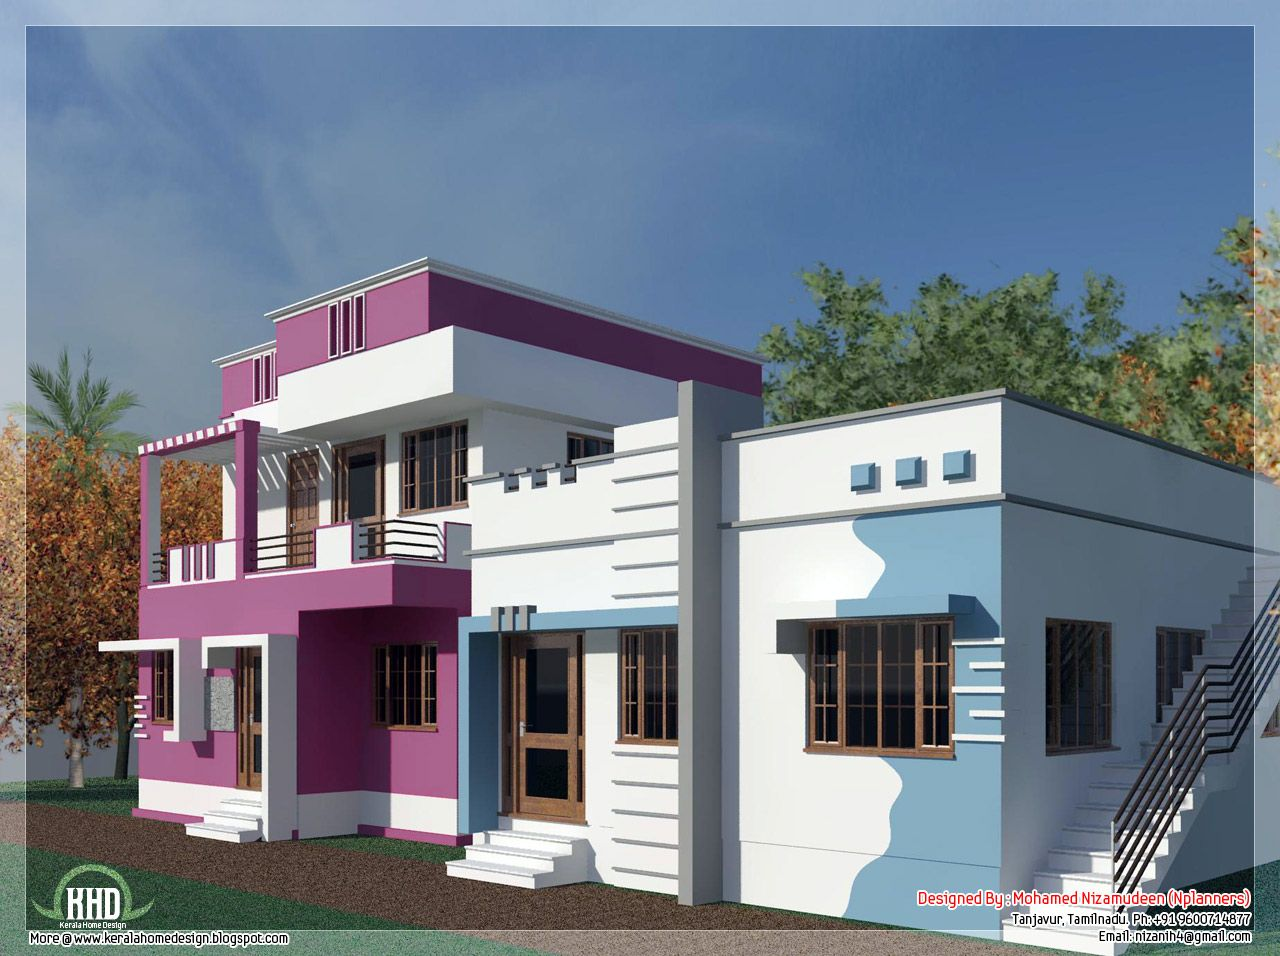 tamilnadu model home design in 3000 sqfeet kerala home design - Home Design Images